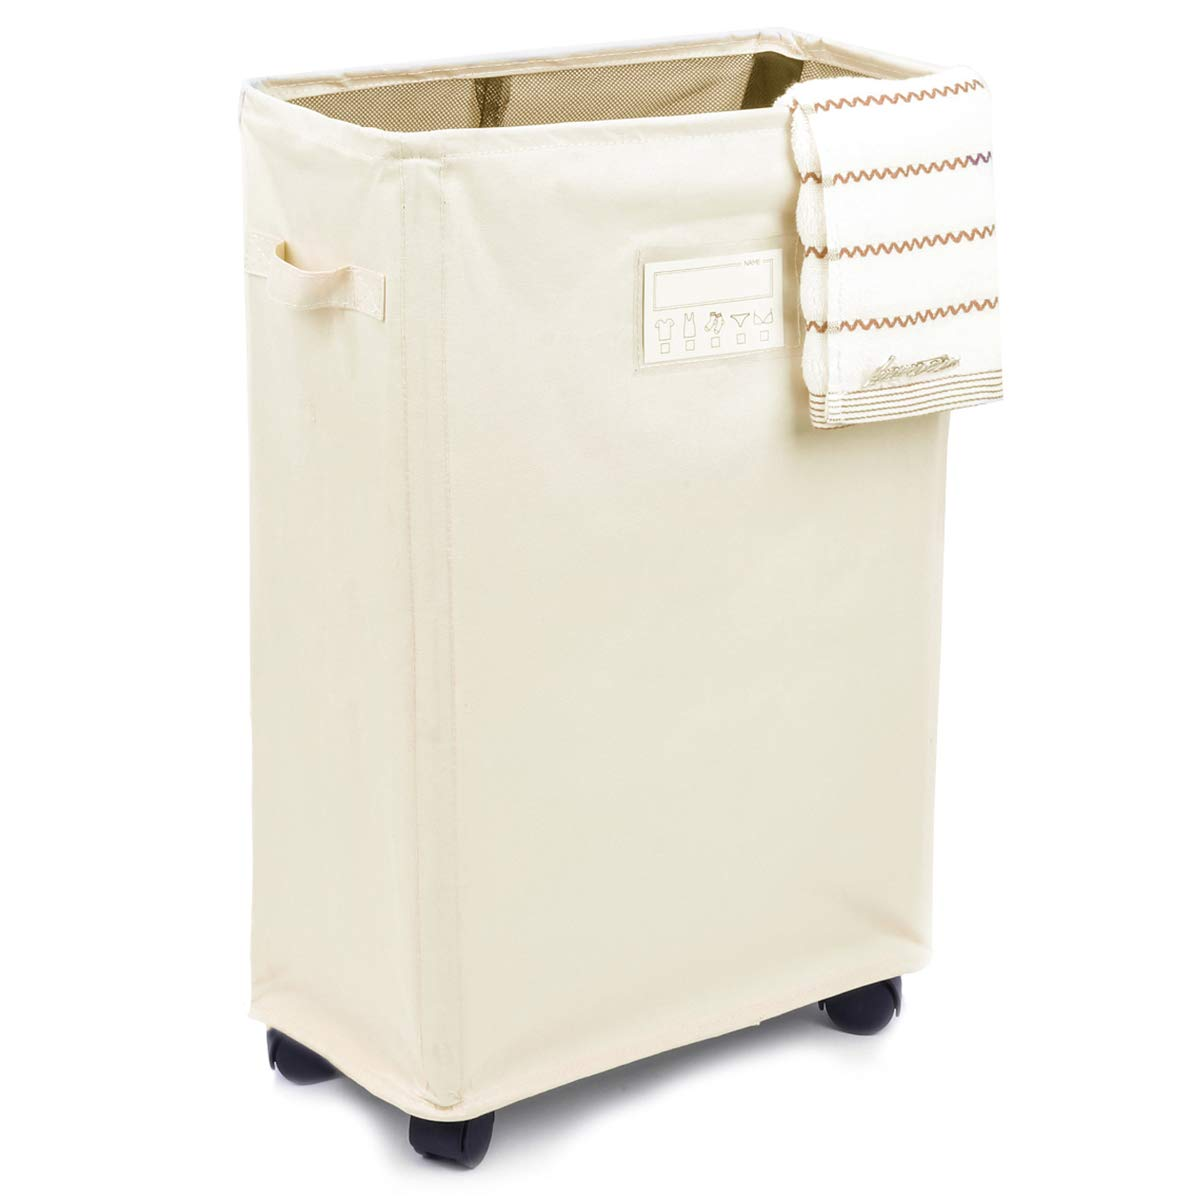 Caroeas Laundry Sorter, Laundry Hamper 3-Bag Card Pocket & Leather Handle Waterproof Laundry Cart Collapsible Laundry Basket Brake & Breathable Mesh Cover Caroeas Home Deocration Co. ltd CLB012-CP3